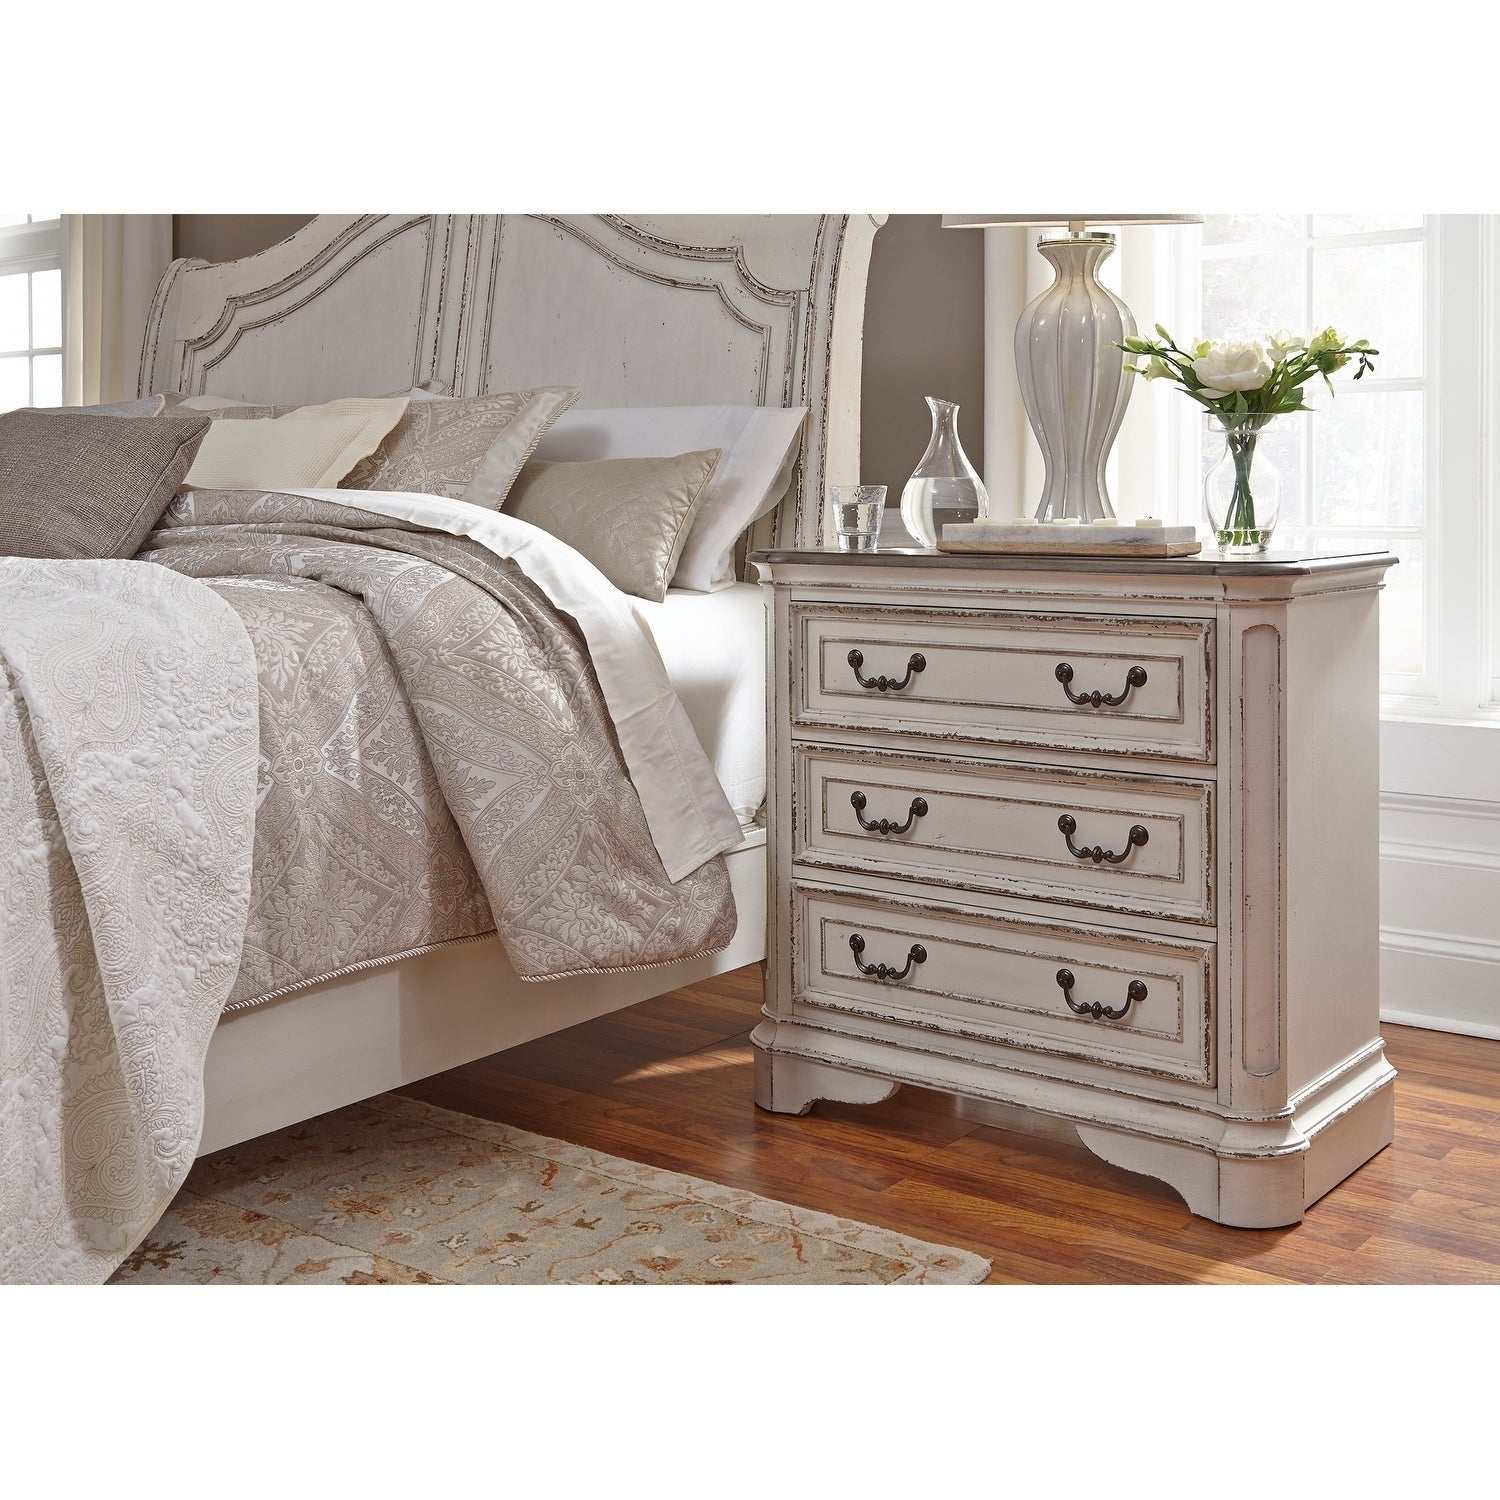 Magnolia Manor Antique White 3 Drawer Bedside Chest